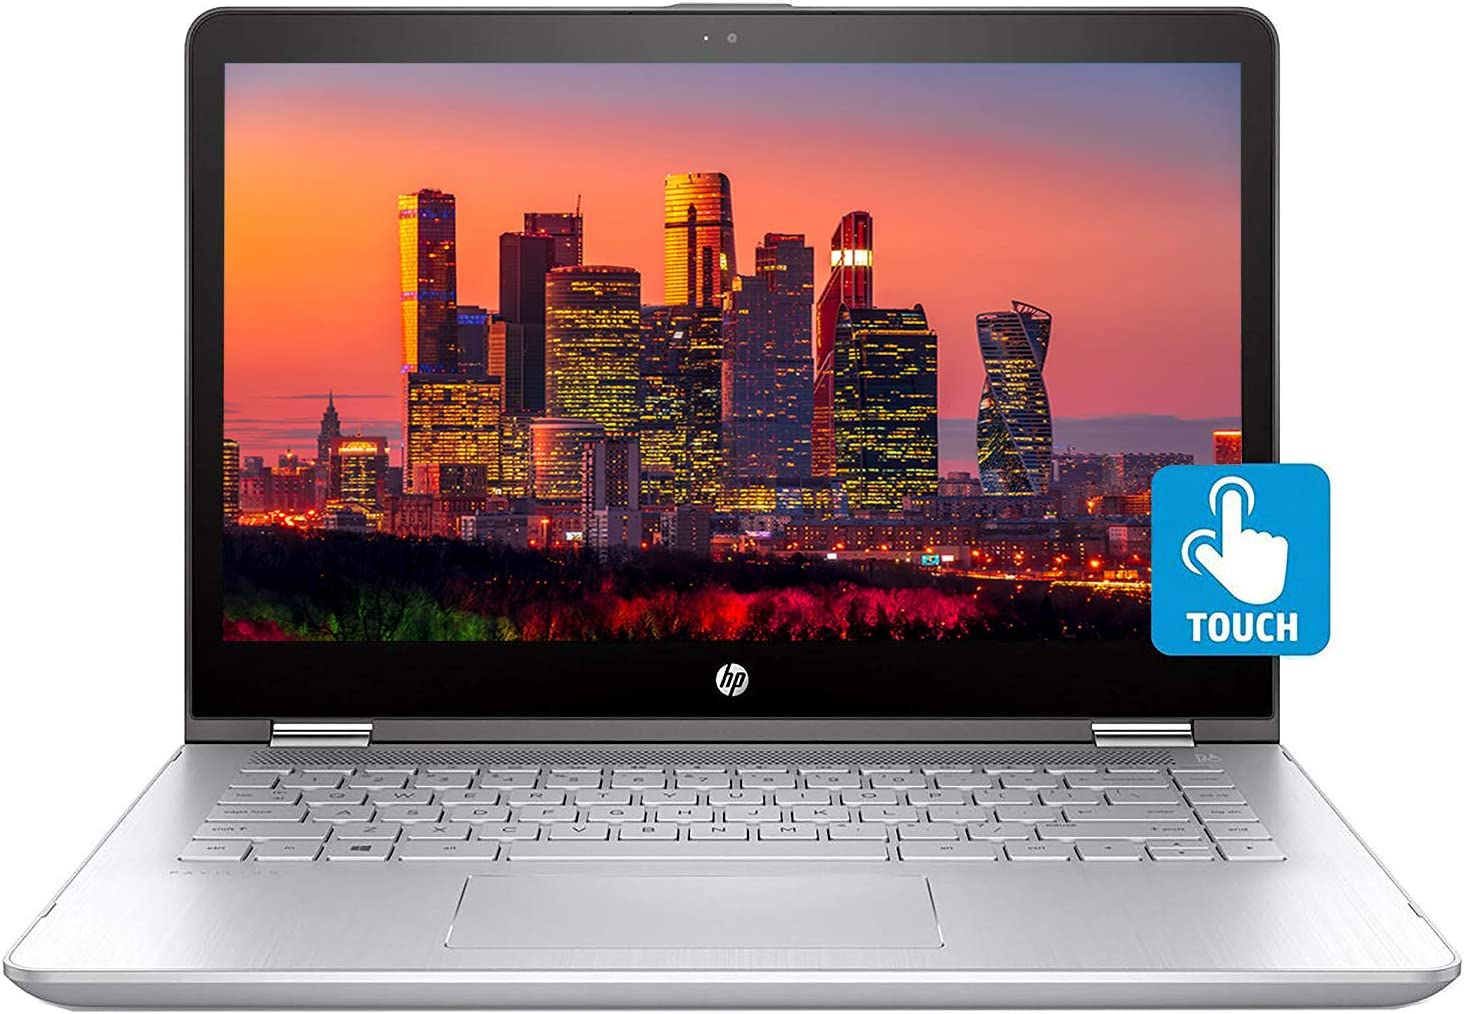 HP Pavilion x360 14-ba200 2 in 1 Notebook with 14 Inch Touchscreen Display, Intel Core i5-8265U, 12GB RAM, 16GB Optane Memory, 1TB SSD, Win 10 Home (Renewed)